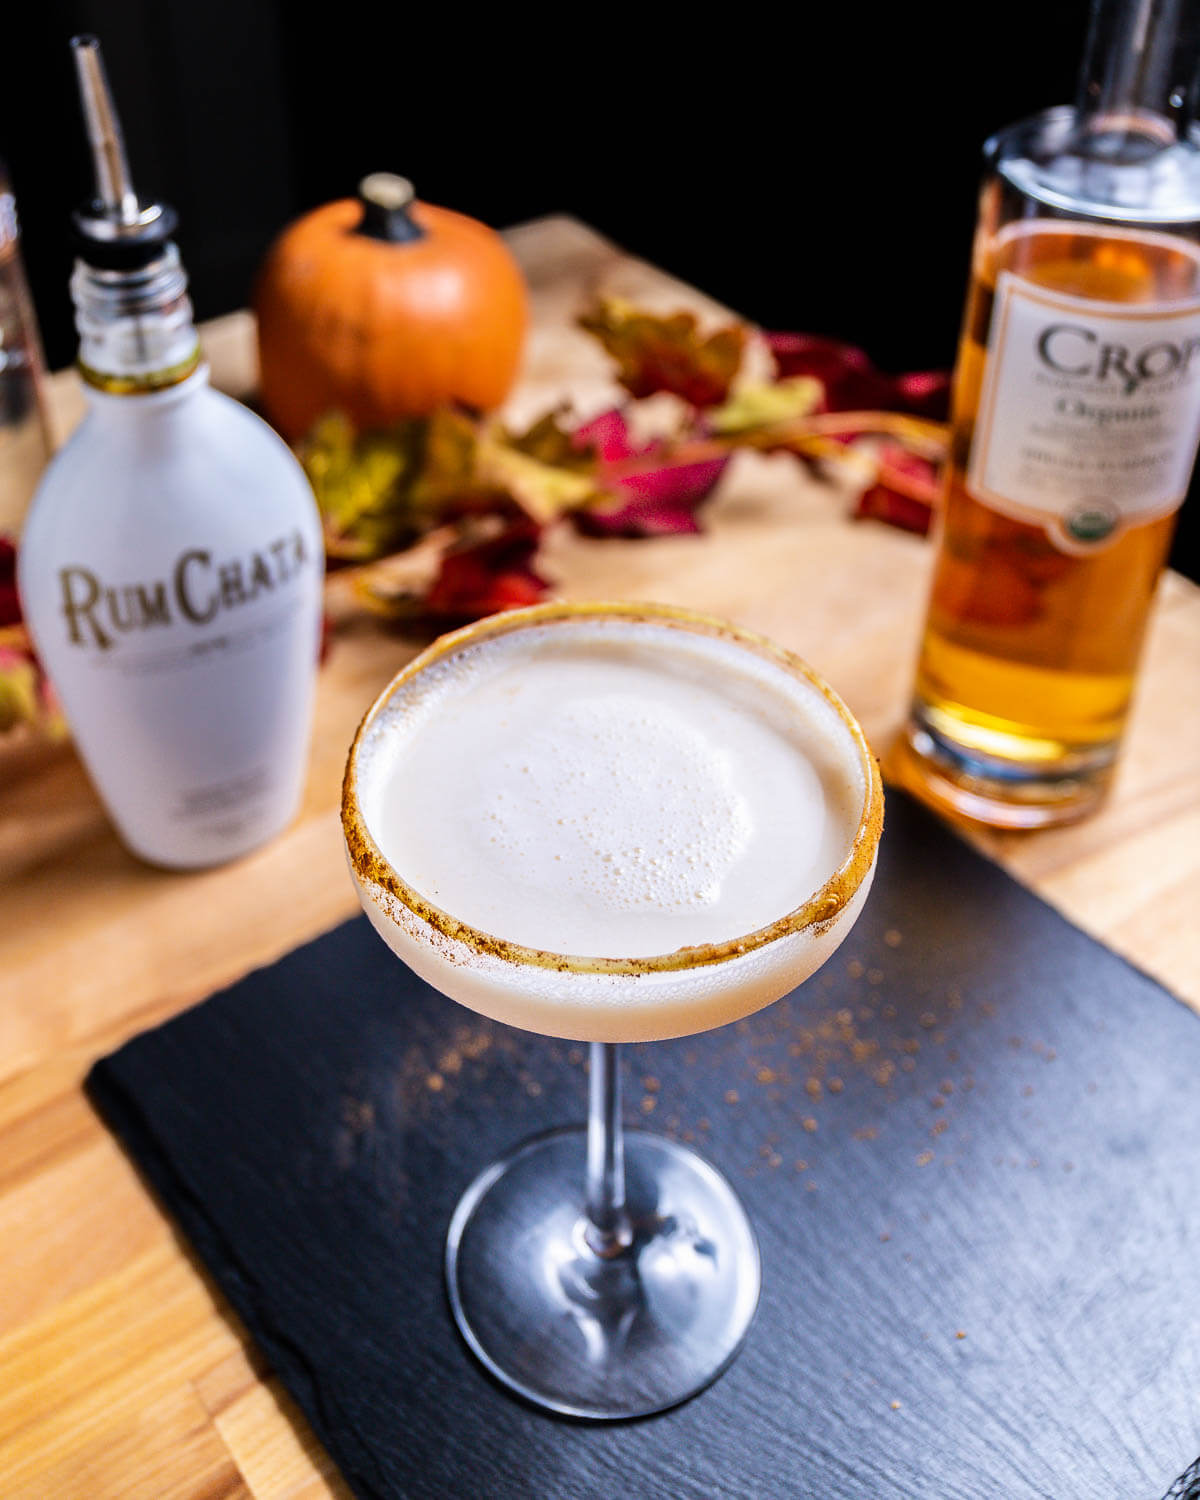 Pumpkin spice martini on table along with bottle of Rum Chata and pumpkin vodka.